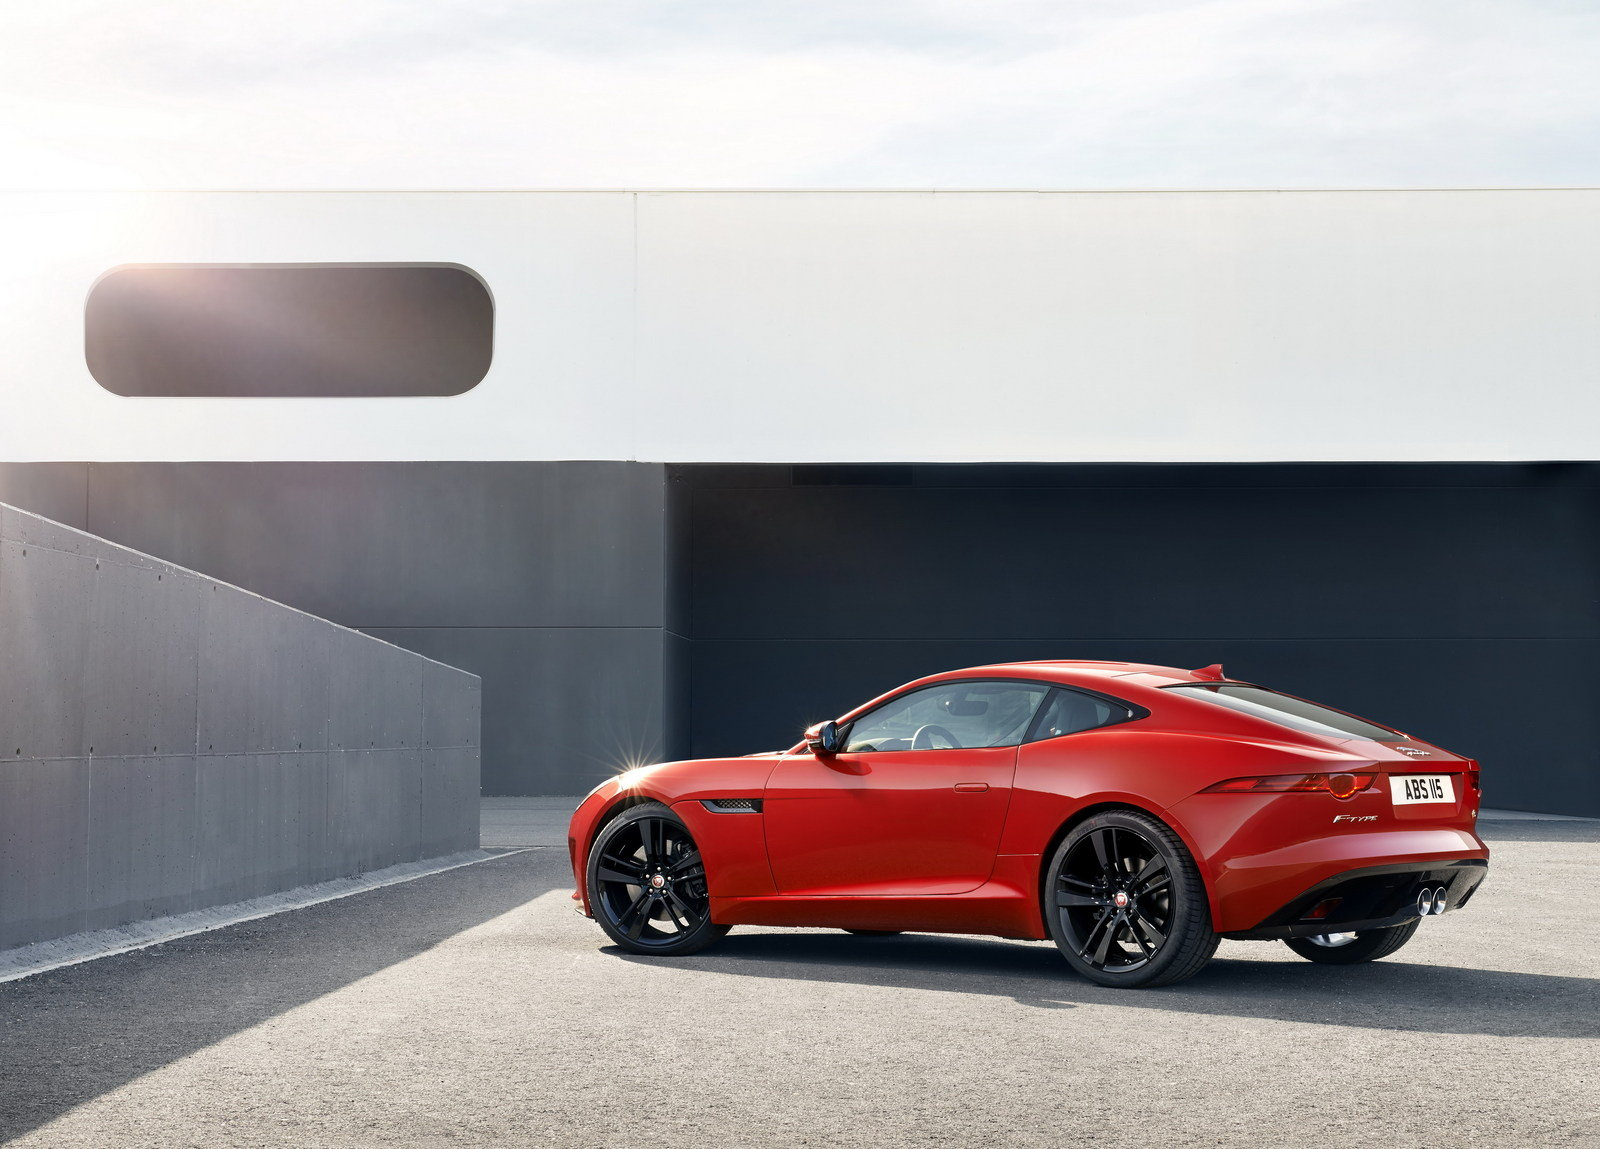 2014 jaguar f type coupe review top speed. Black Bedroom Furniture Sets. Home Design Ideas